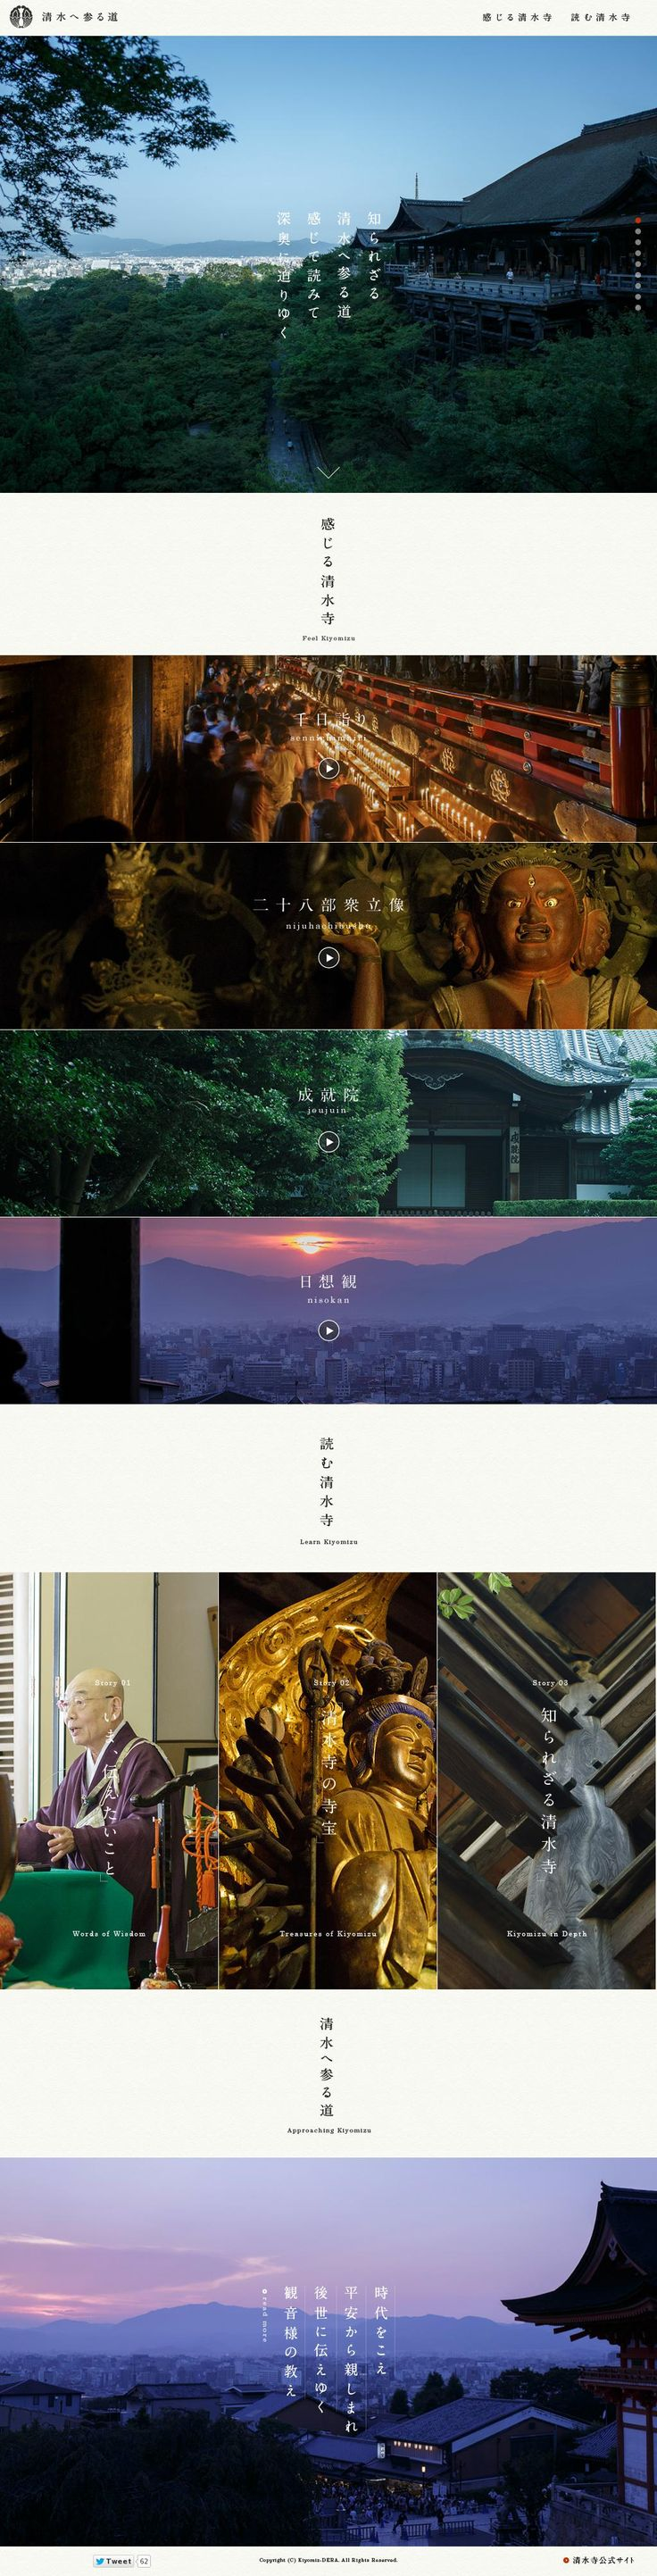 The website 'http://feel.kiyomizudera.or.jp/#' courtesy of @Pinstamatic (http://pinstamatic.com)